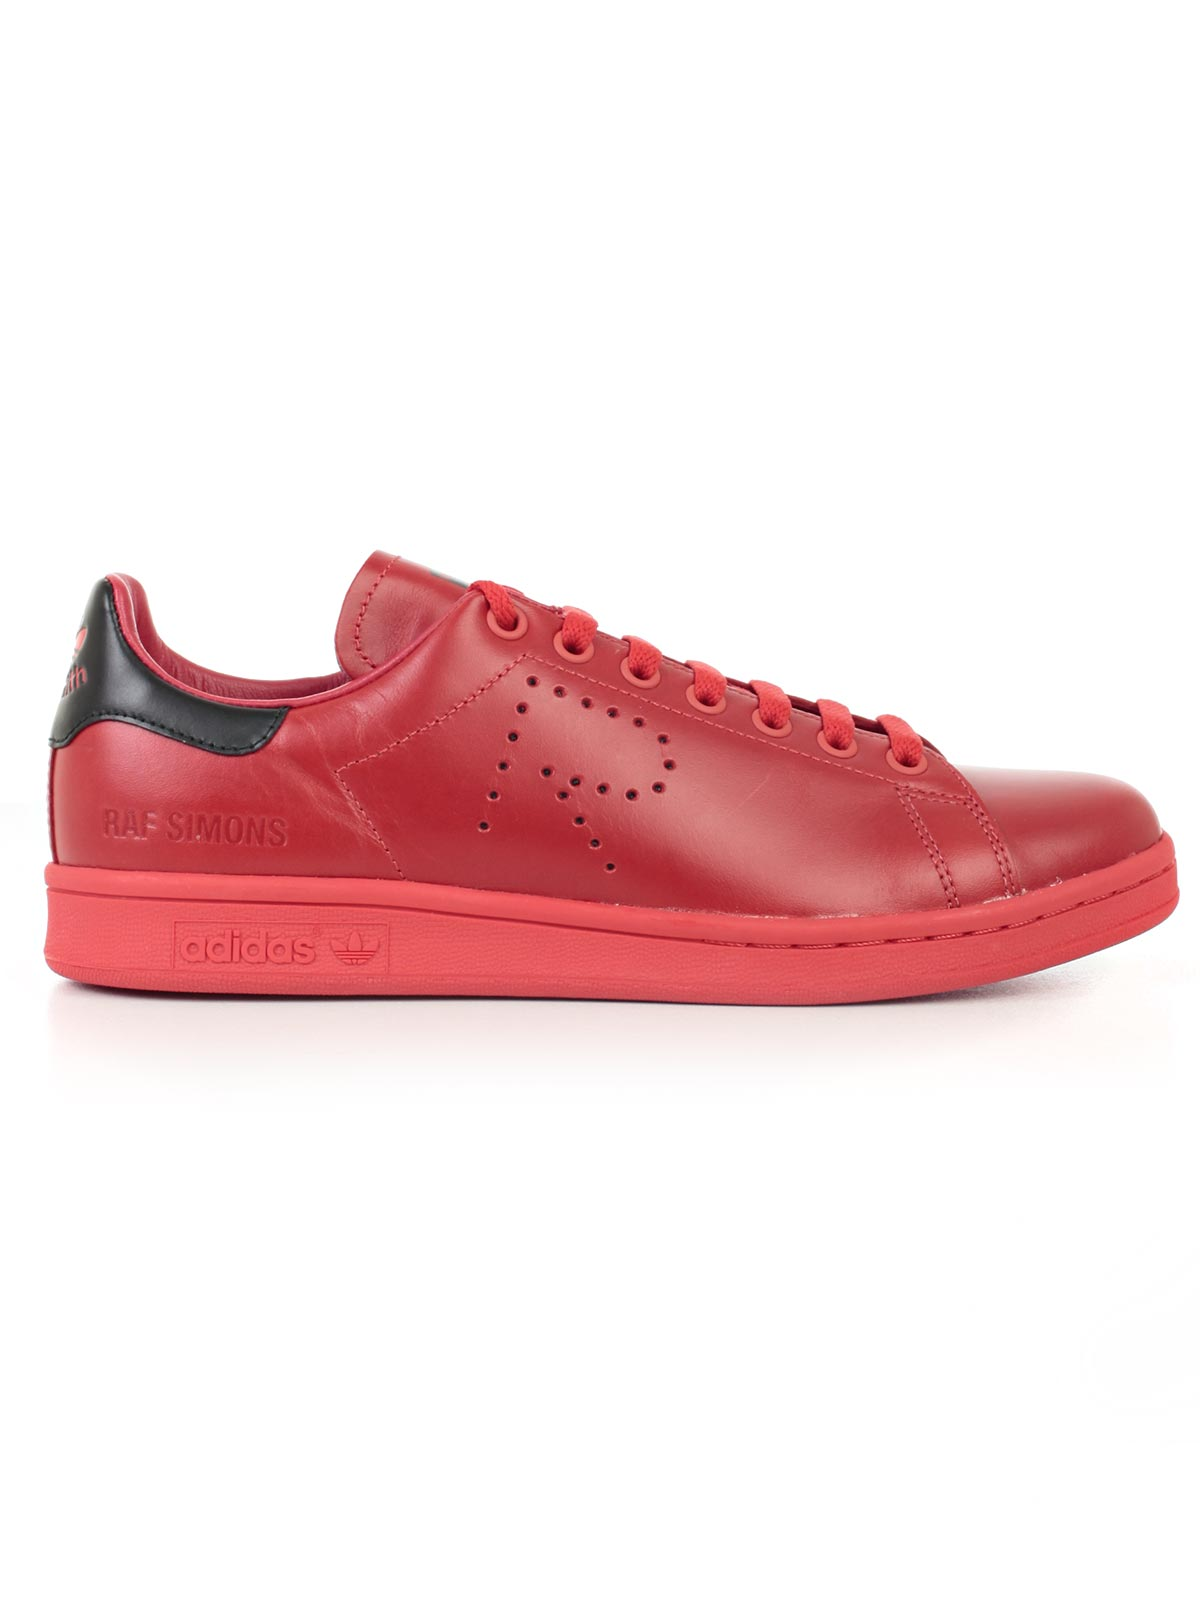 Picture of ADIDAS X RAF SIMONS FOOTWEAR SCARPA STAN SMITH